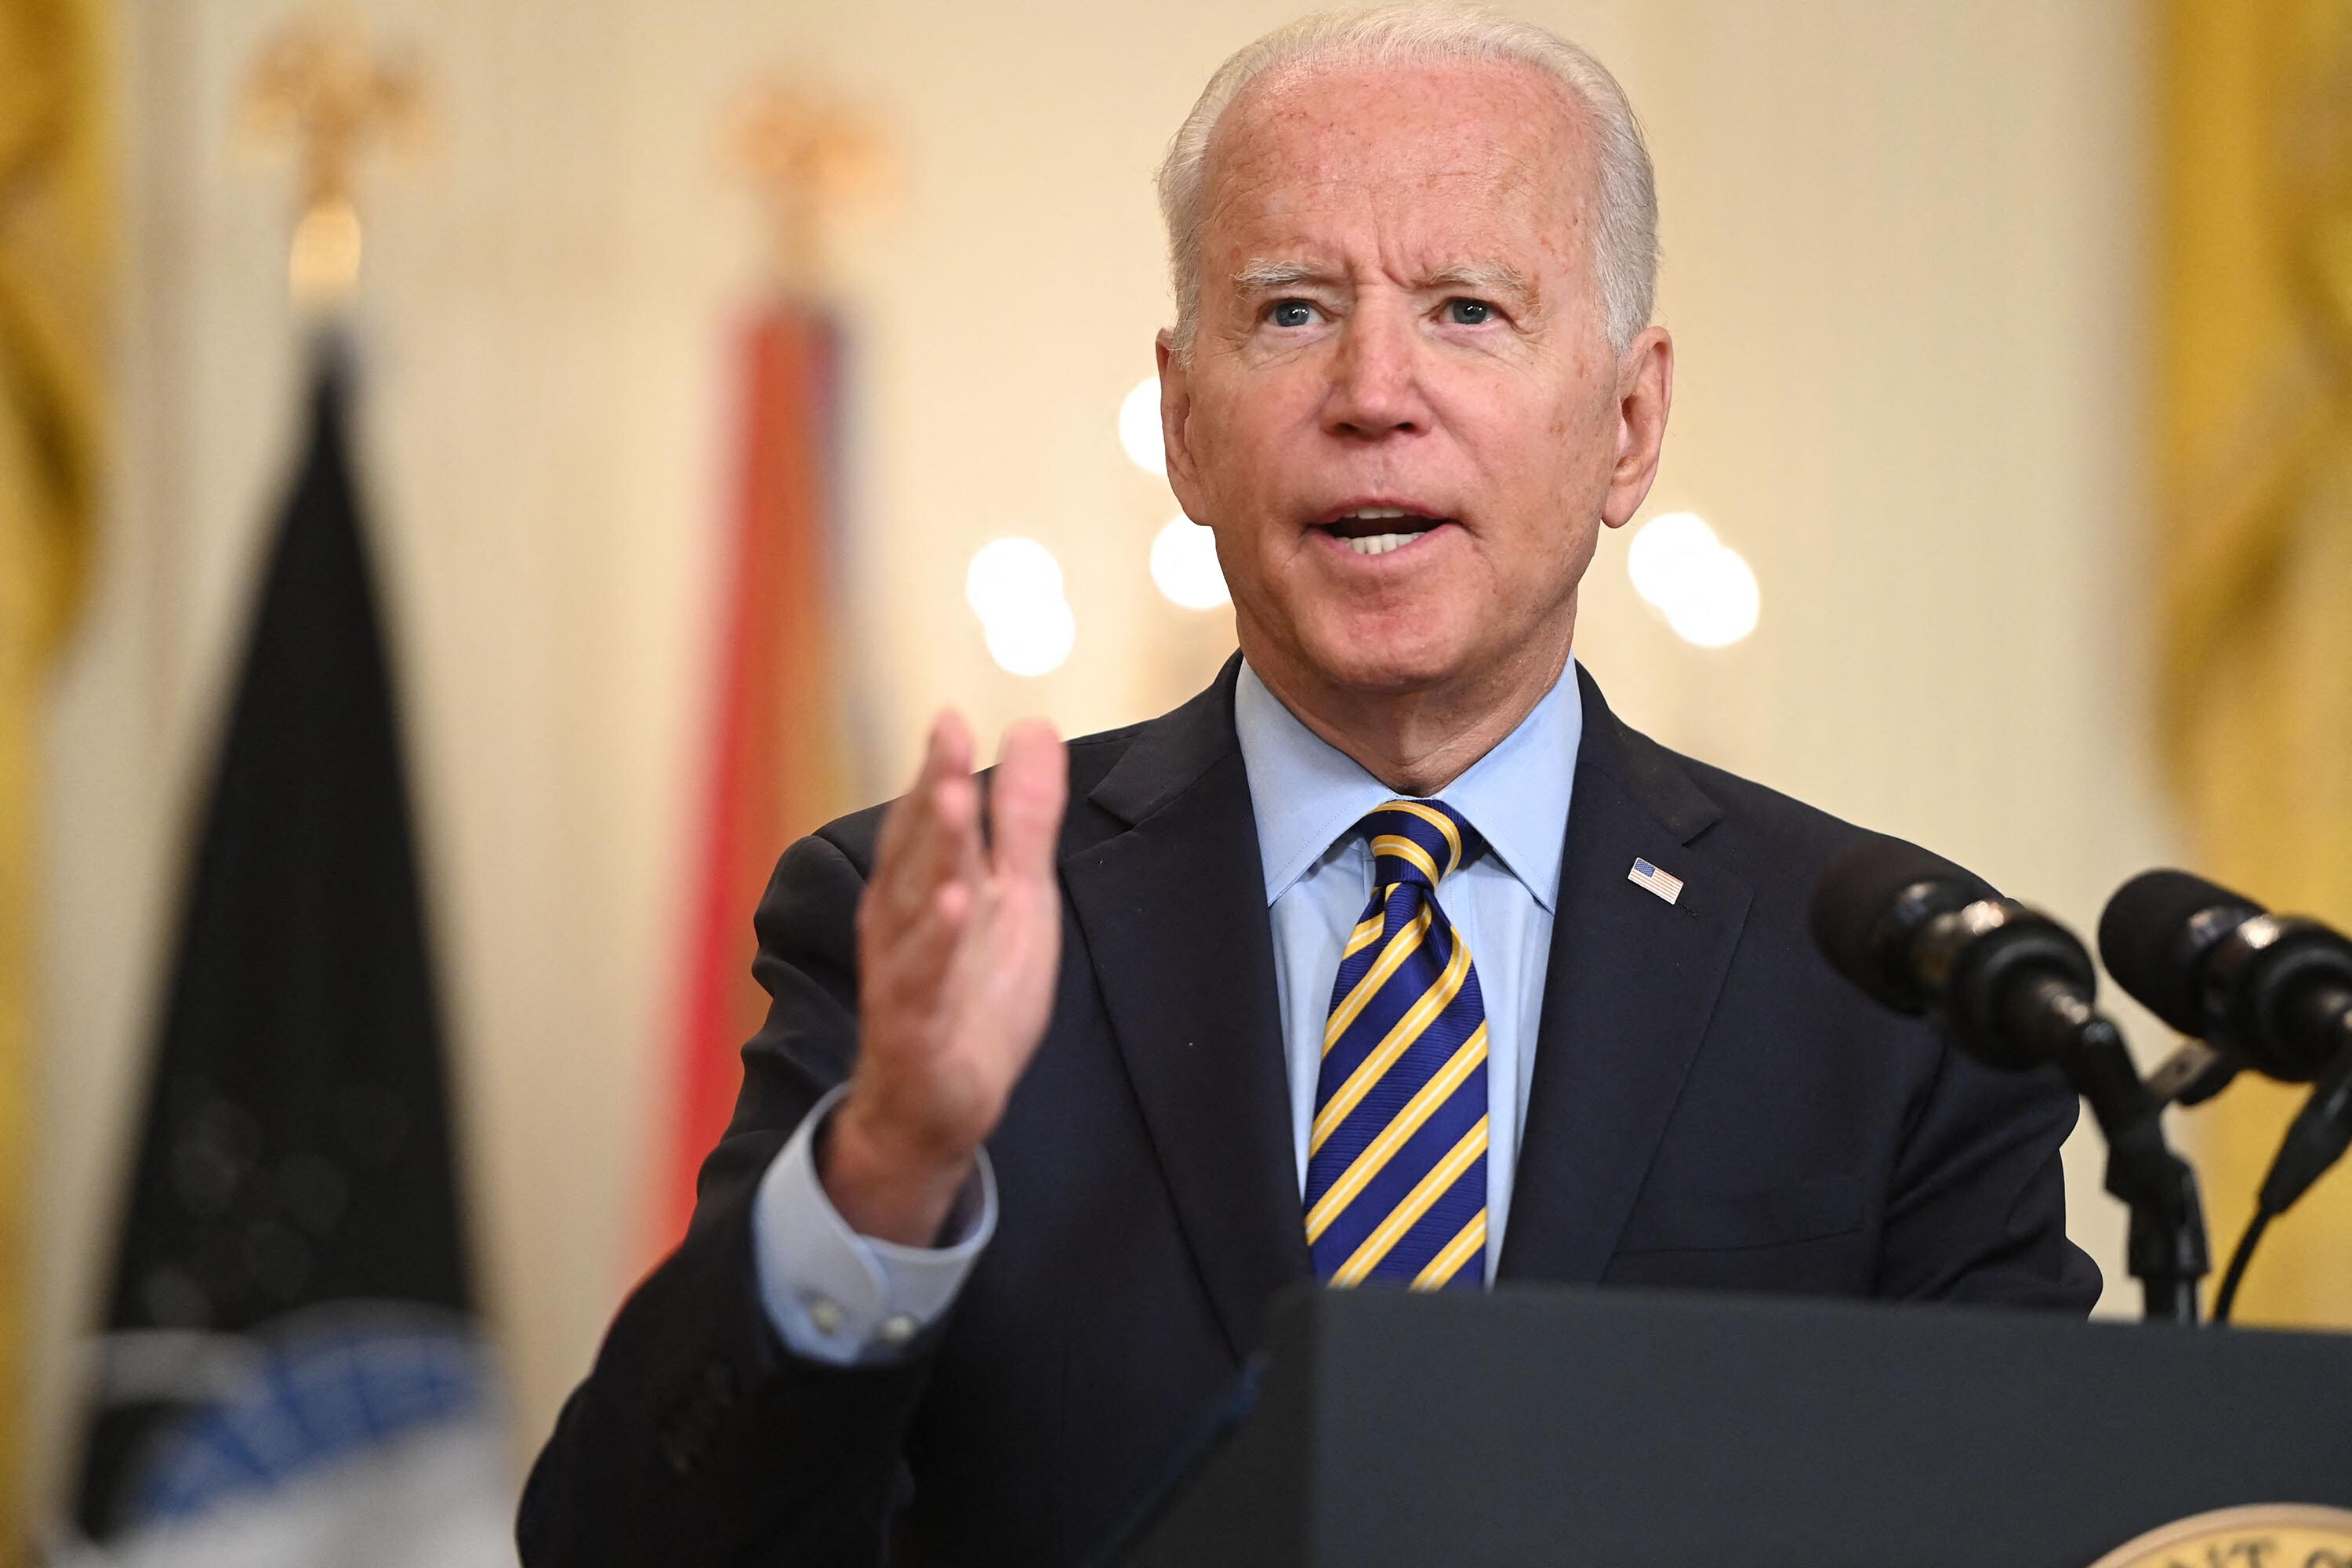 Biden calls on Cuban regime to 'hear their people and serve their needs' amid rare protests